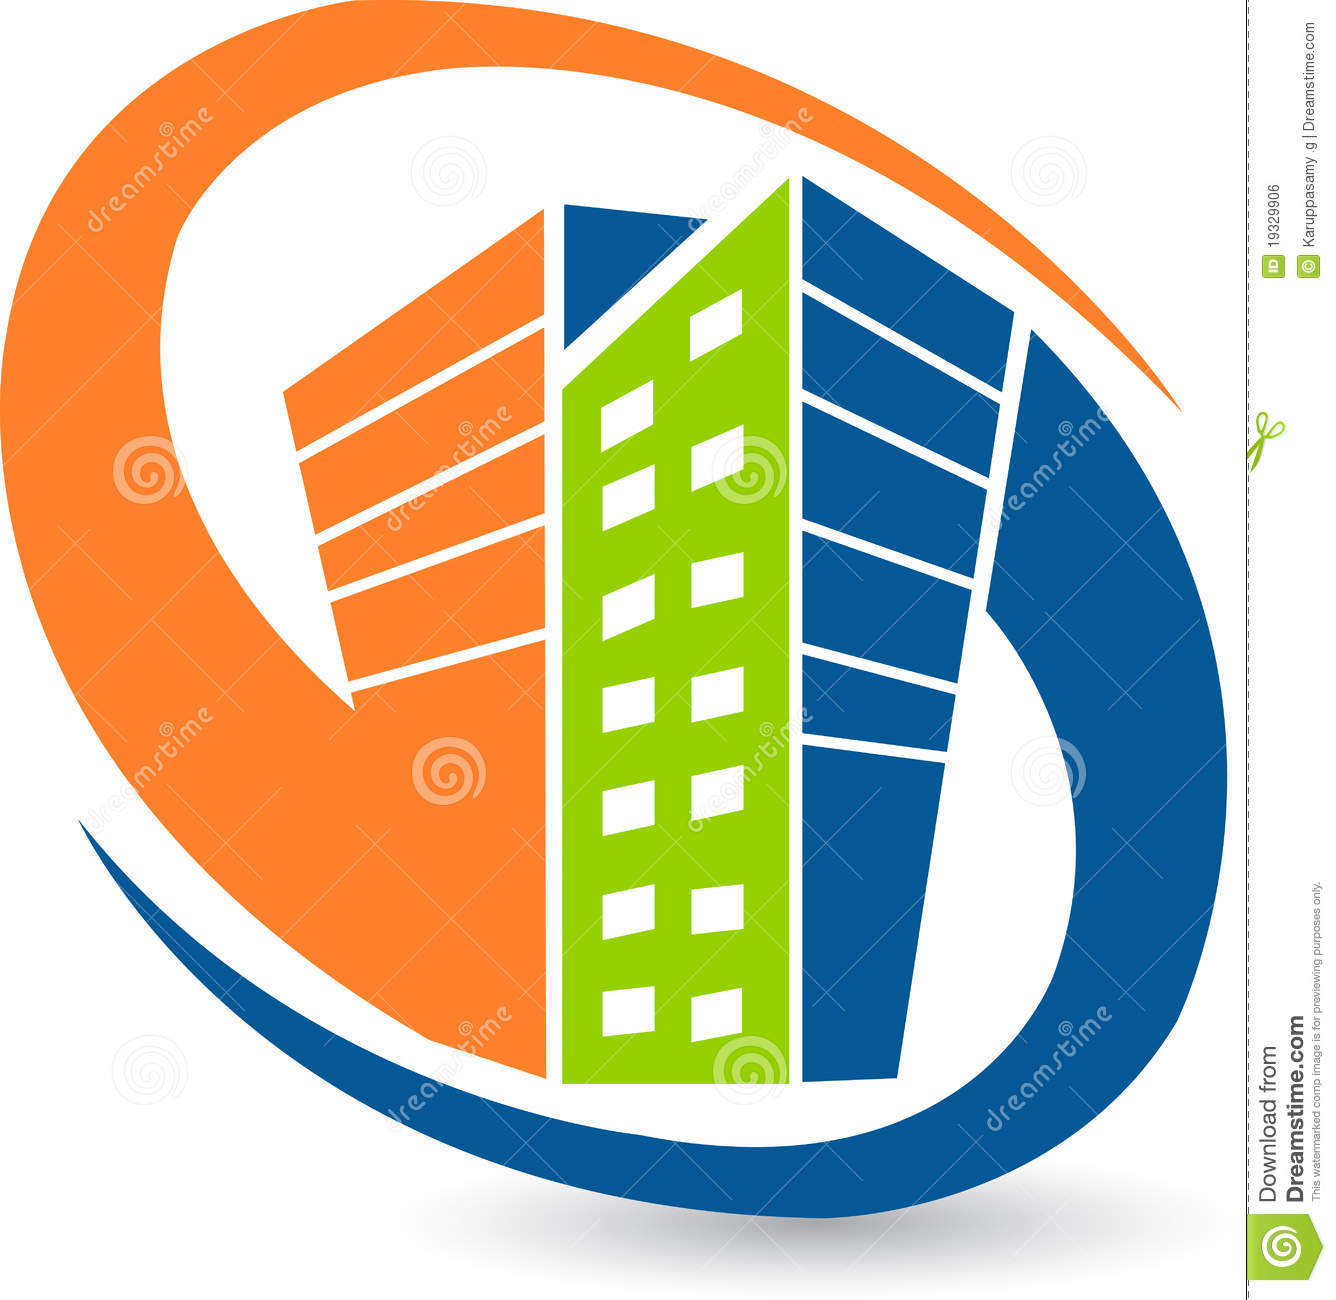 Orange real estate stock. Building logo clipart